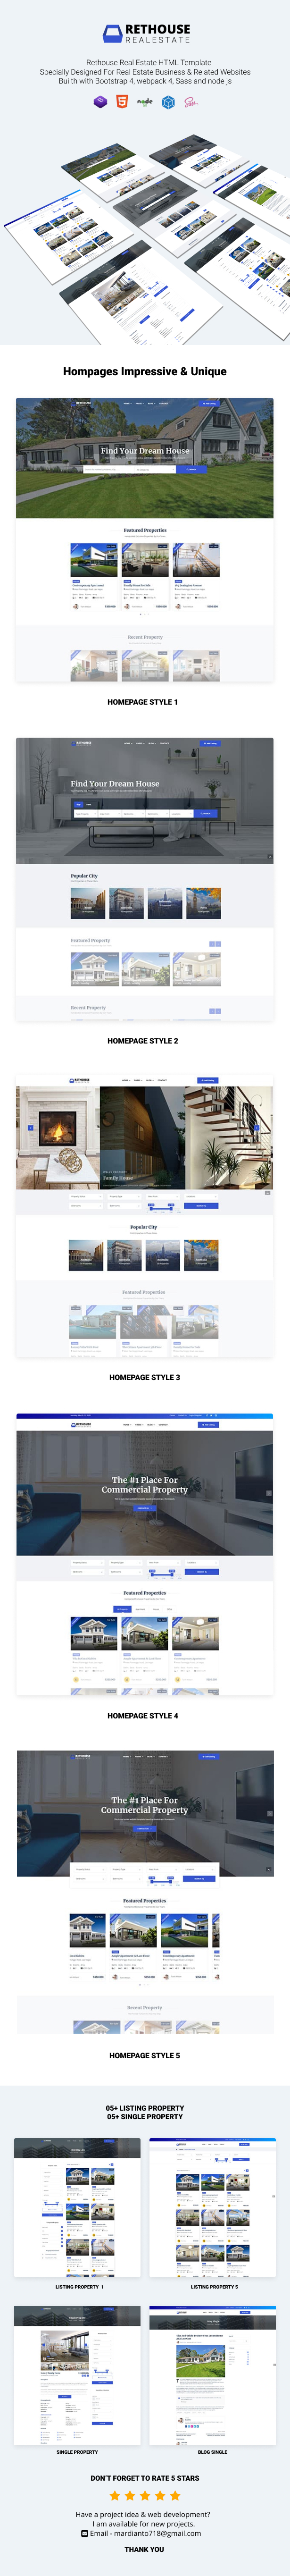 Rethouse - Real Estate Html template